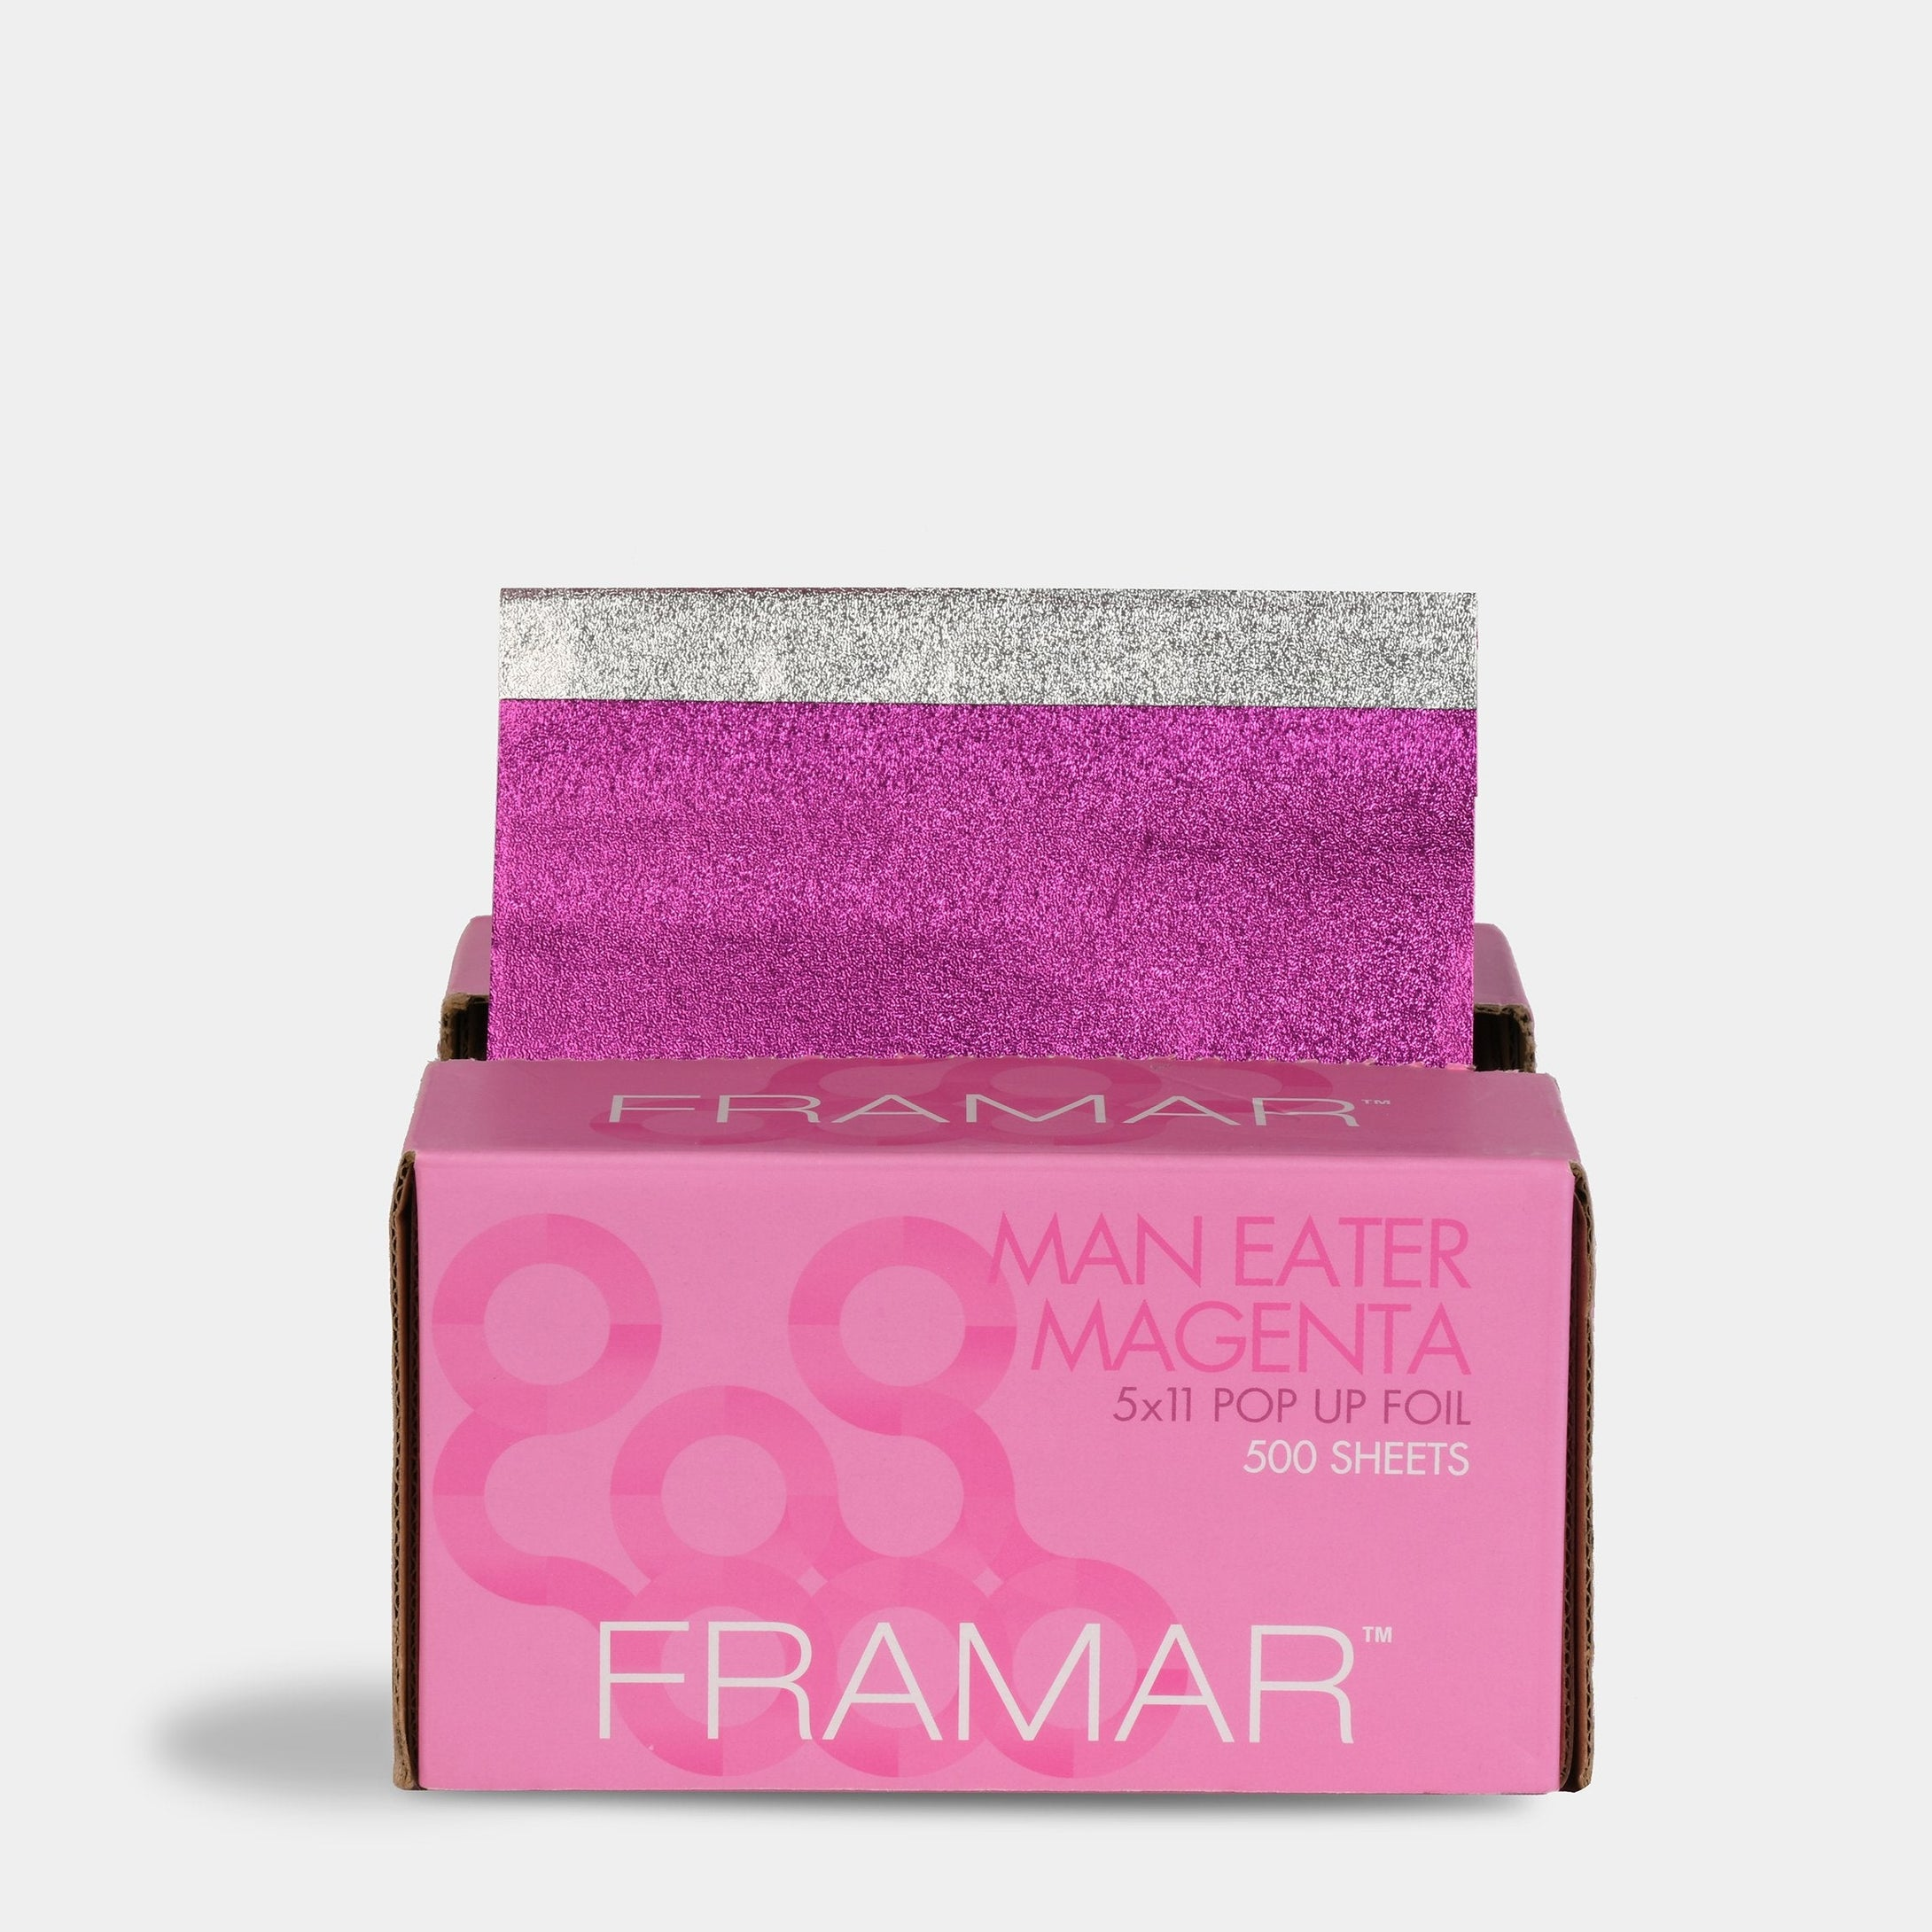 Framar 5 x 11 Pop Ups Man-Eater Magenta Pop Up Foils (500 Sheets)